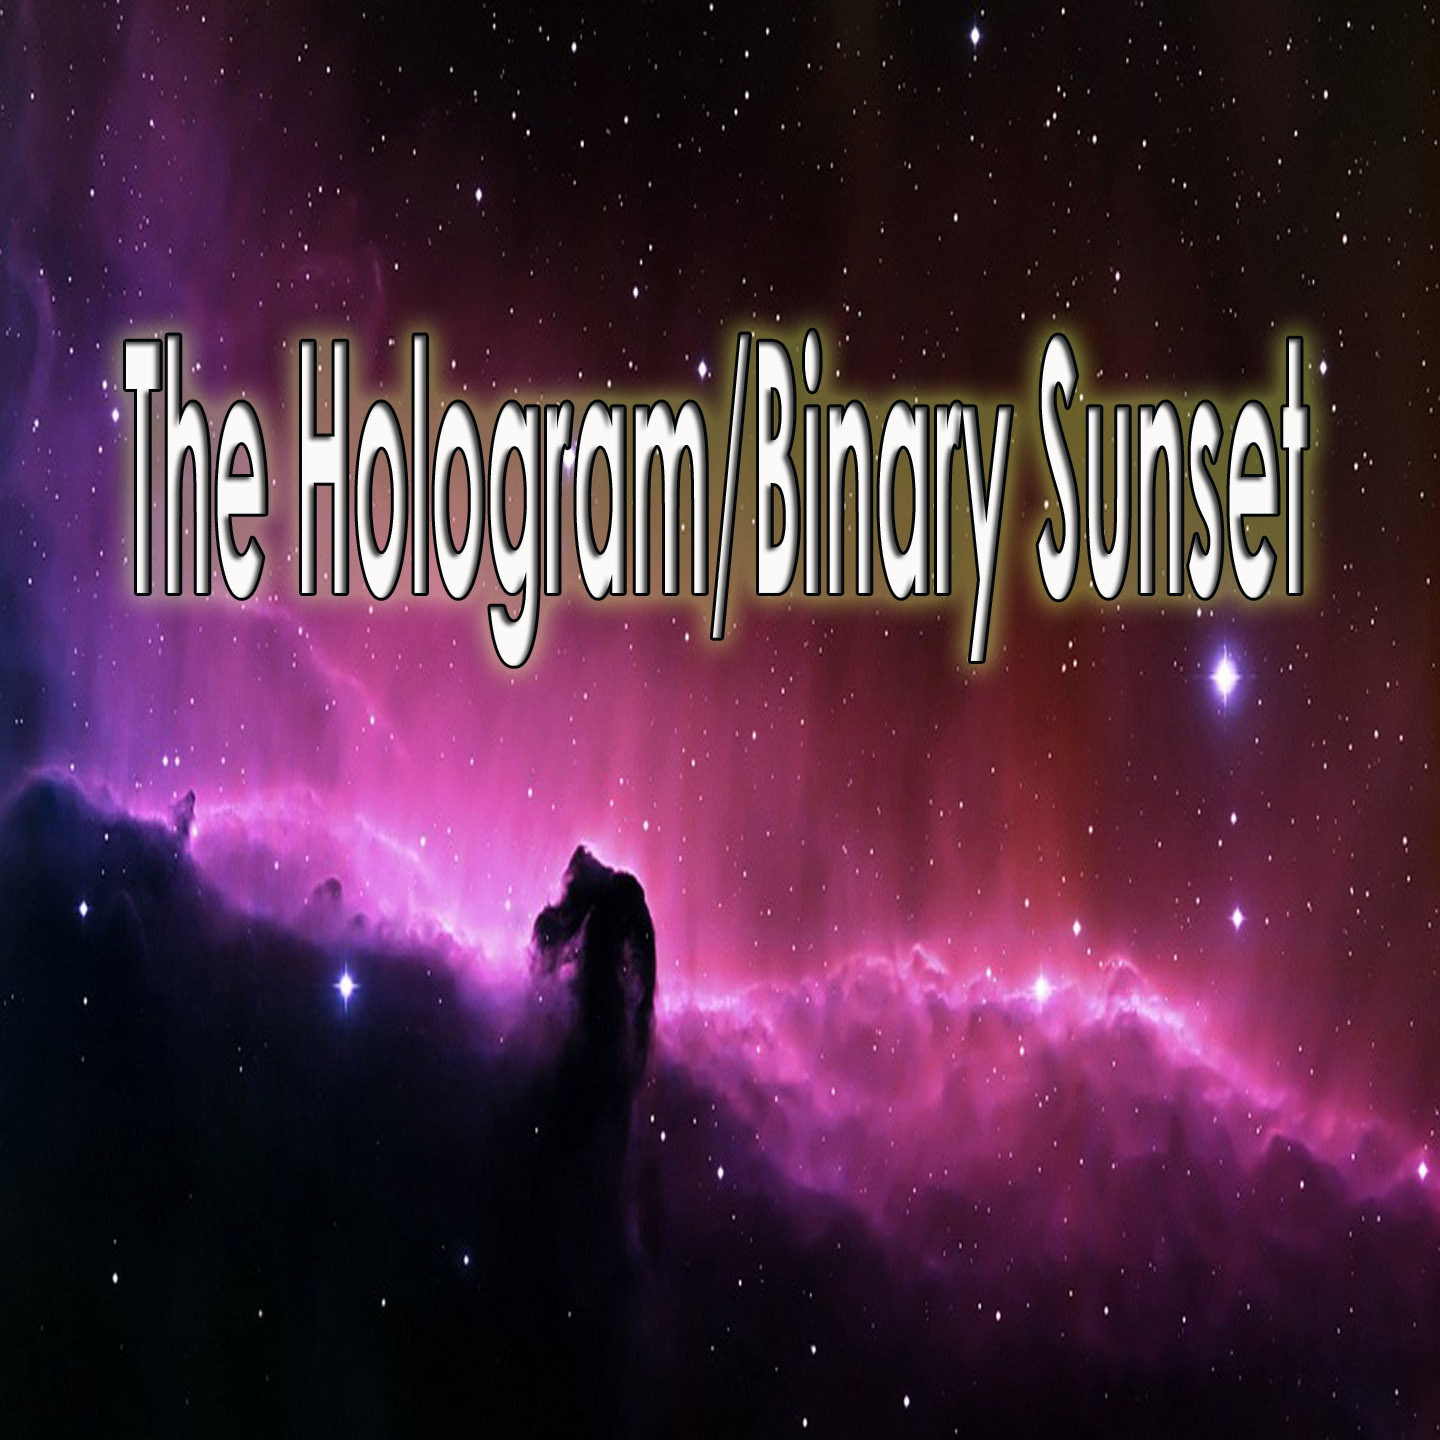 The Hologram/Binary Sunset